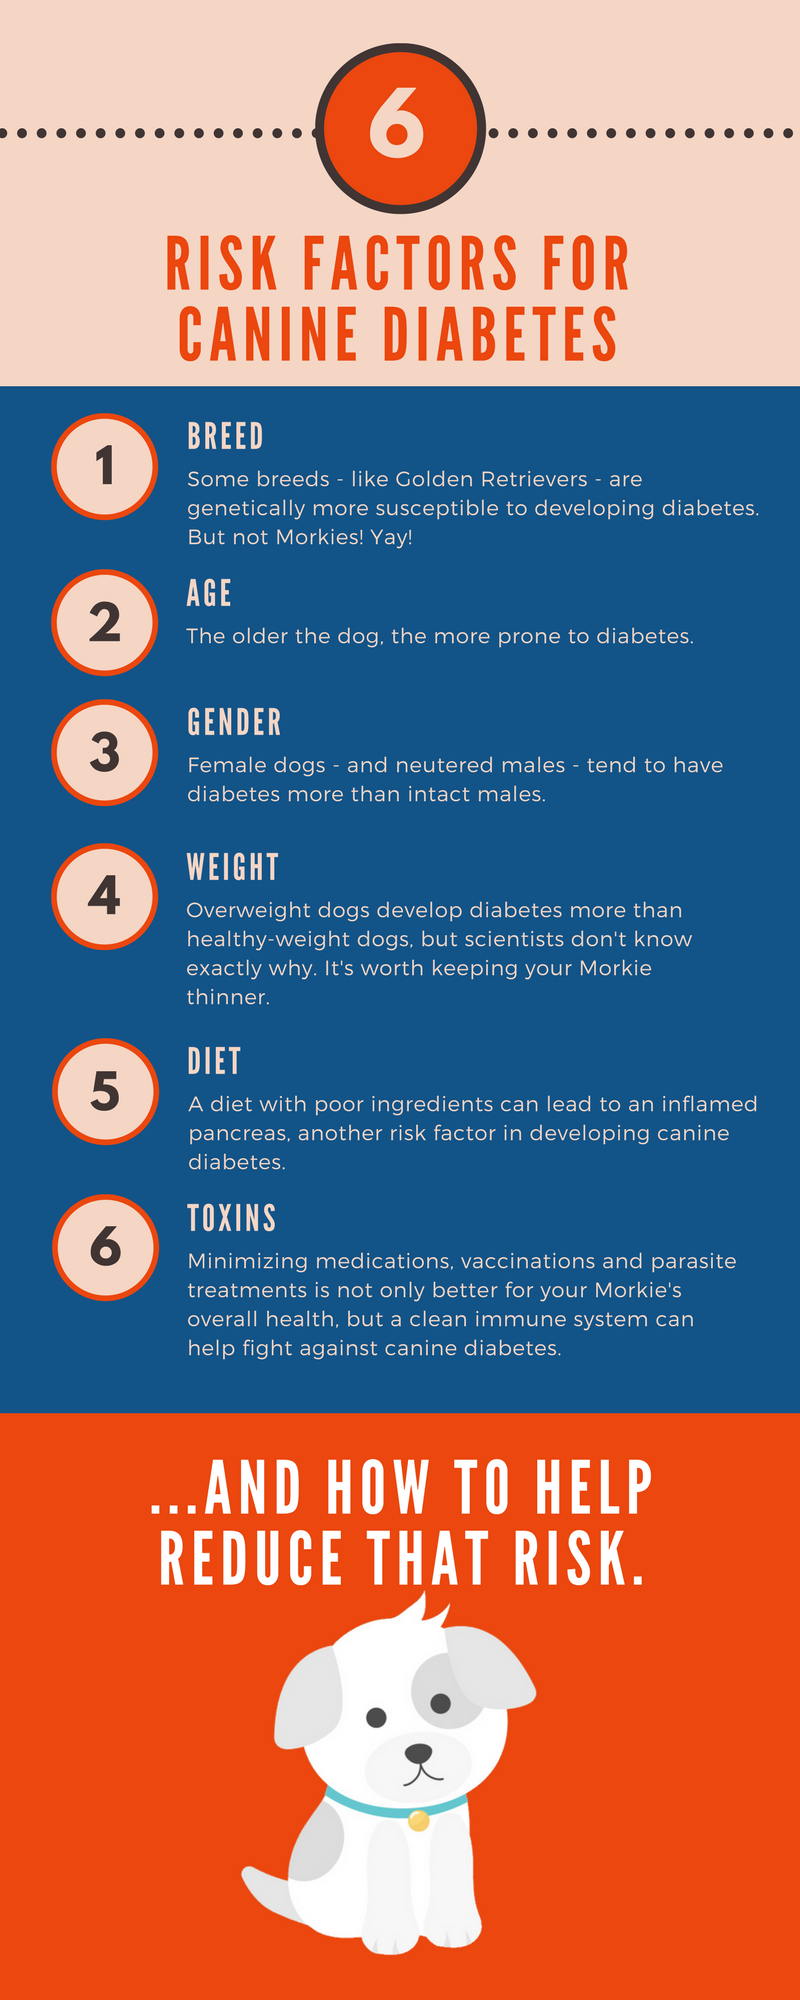 Infographic showing all the risk factors for canine diabetes: breed, age, gender, weight, diet and toxins.